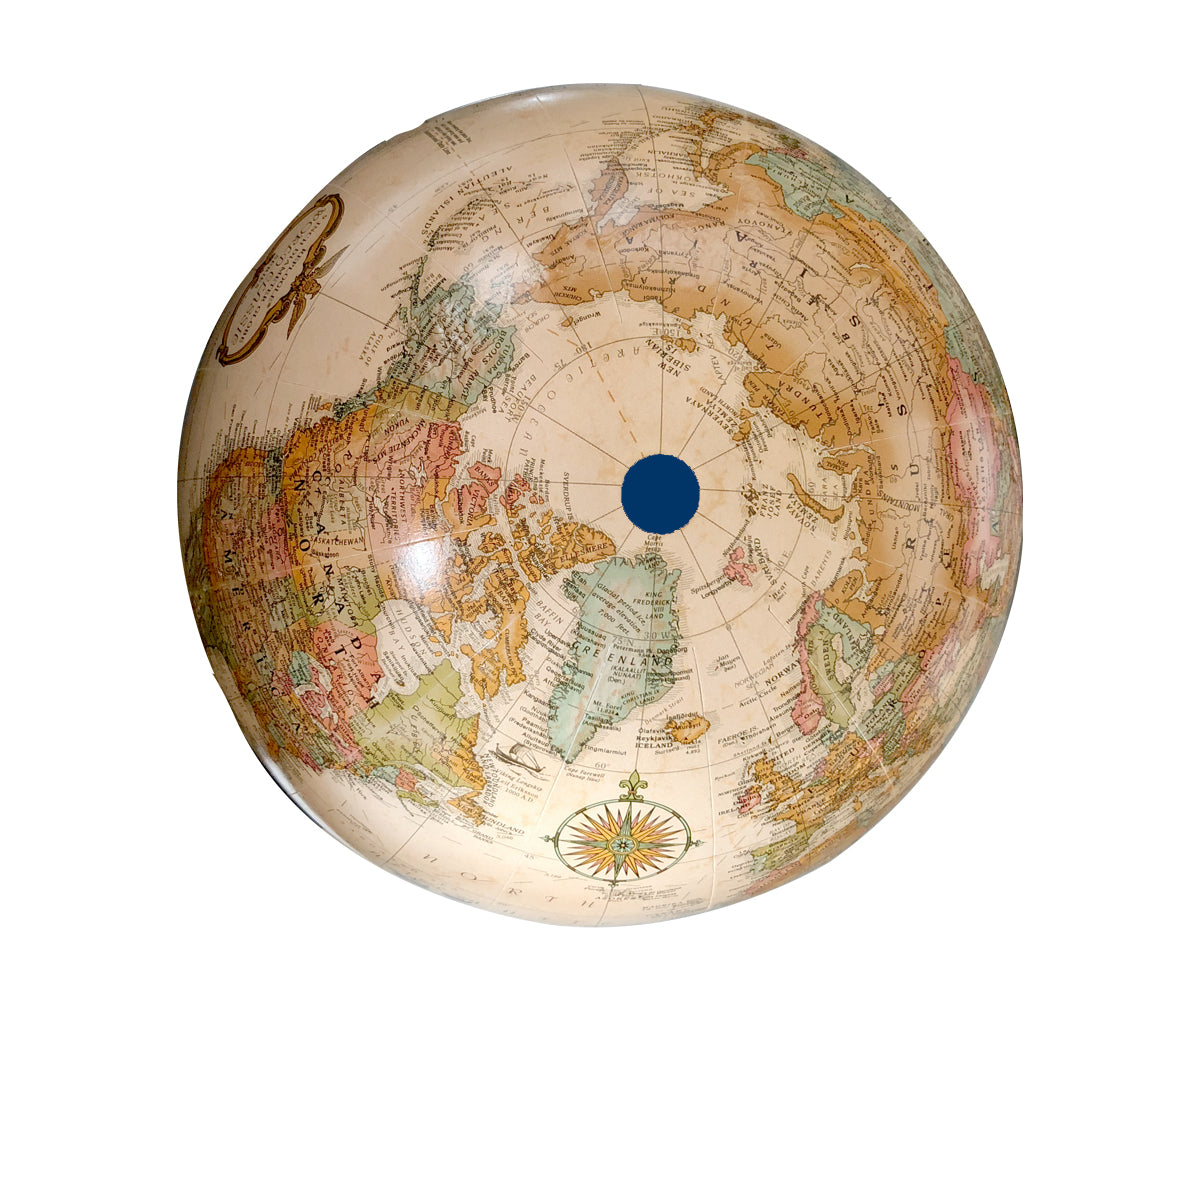 9 Inch Antique Classic Desk Globe with Blue Base